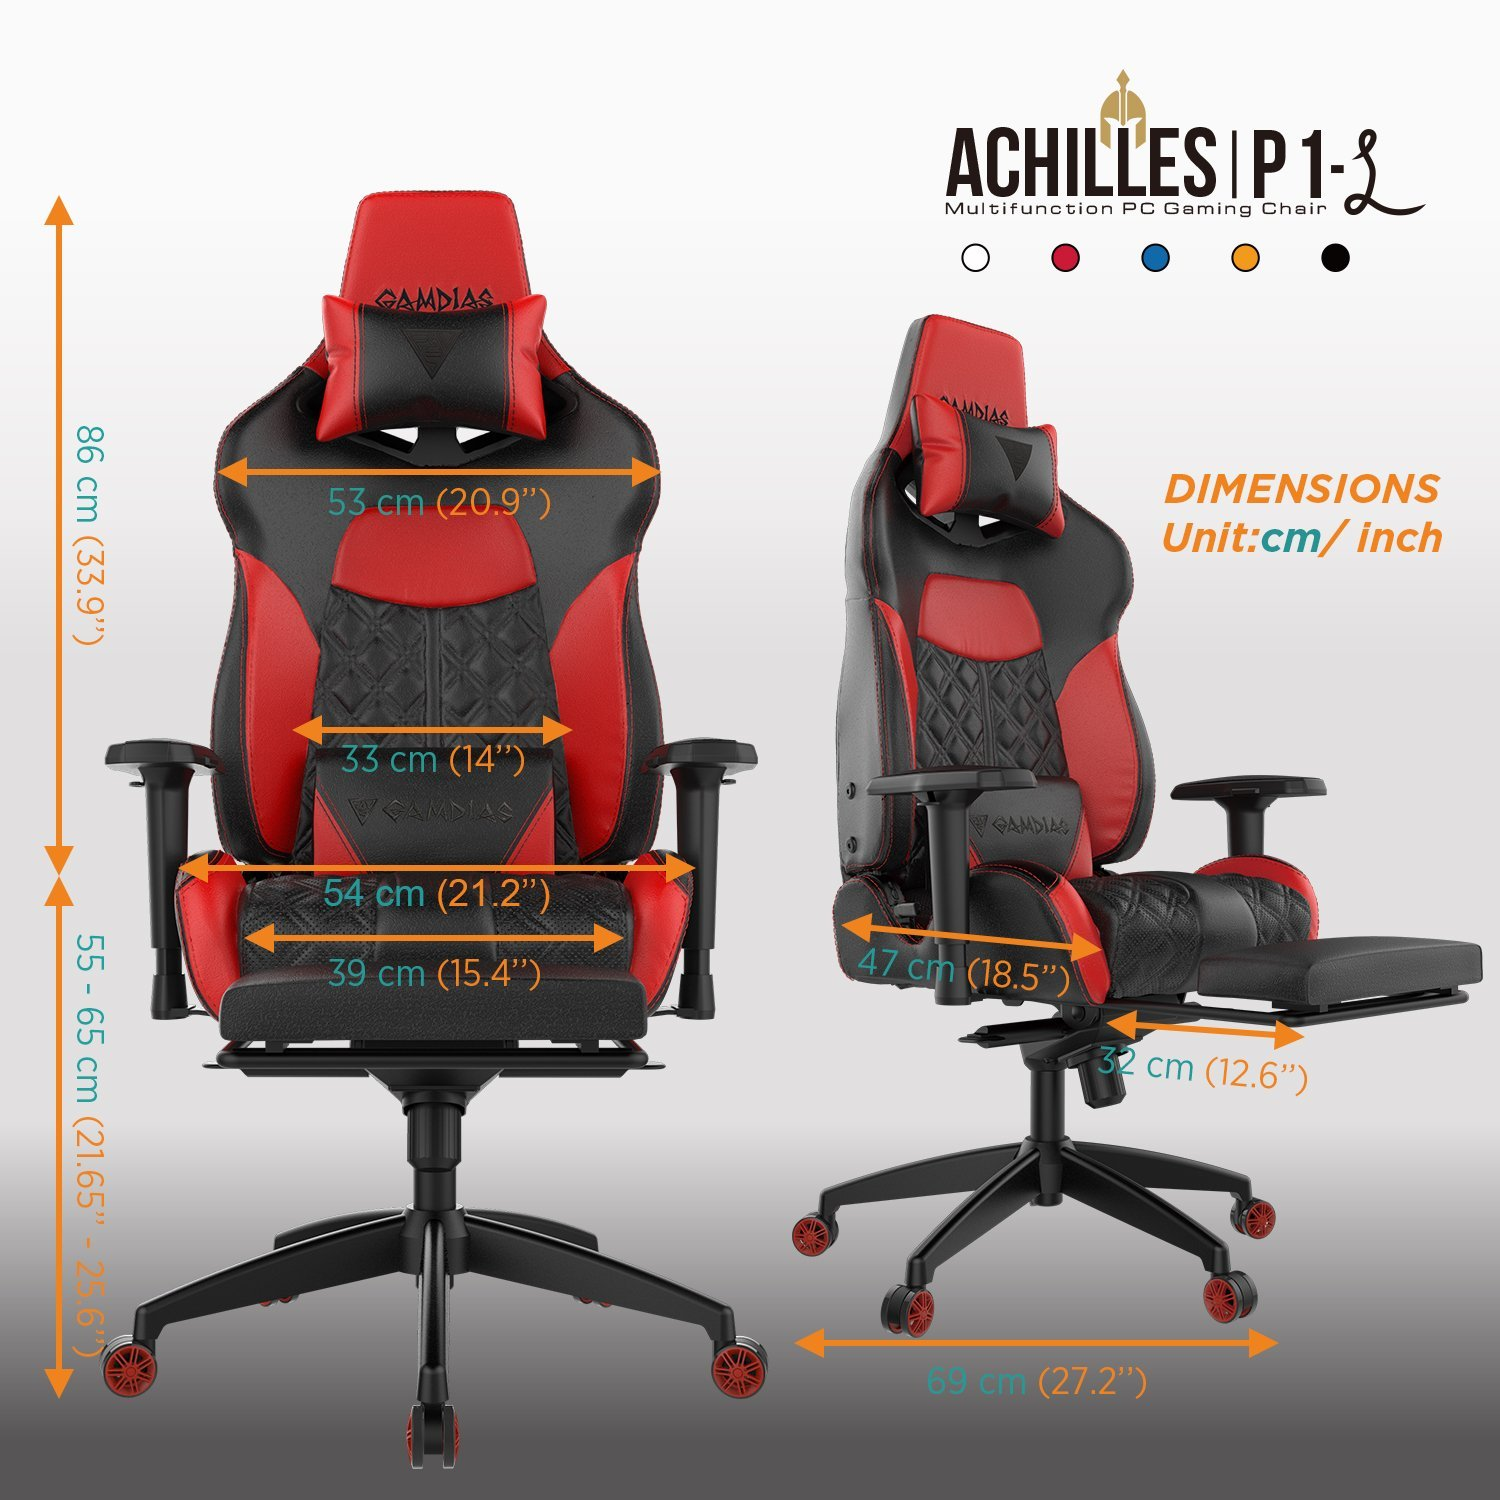 Most Comfortable Chair For Gaming Review Gamdias Achilles P1 Gaming Chair Techdissected